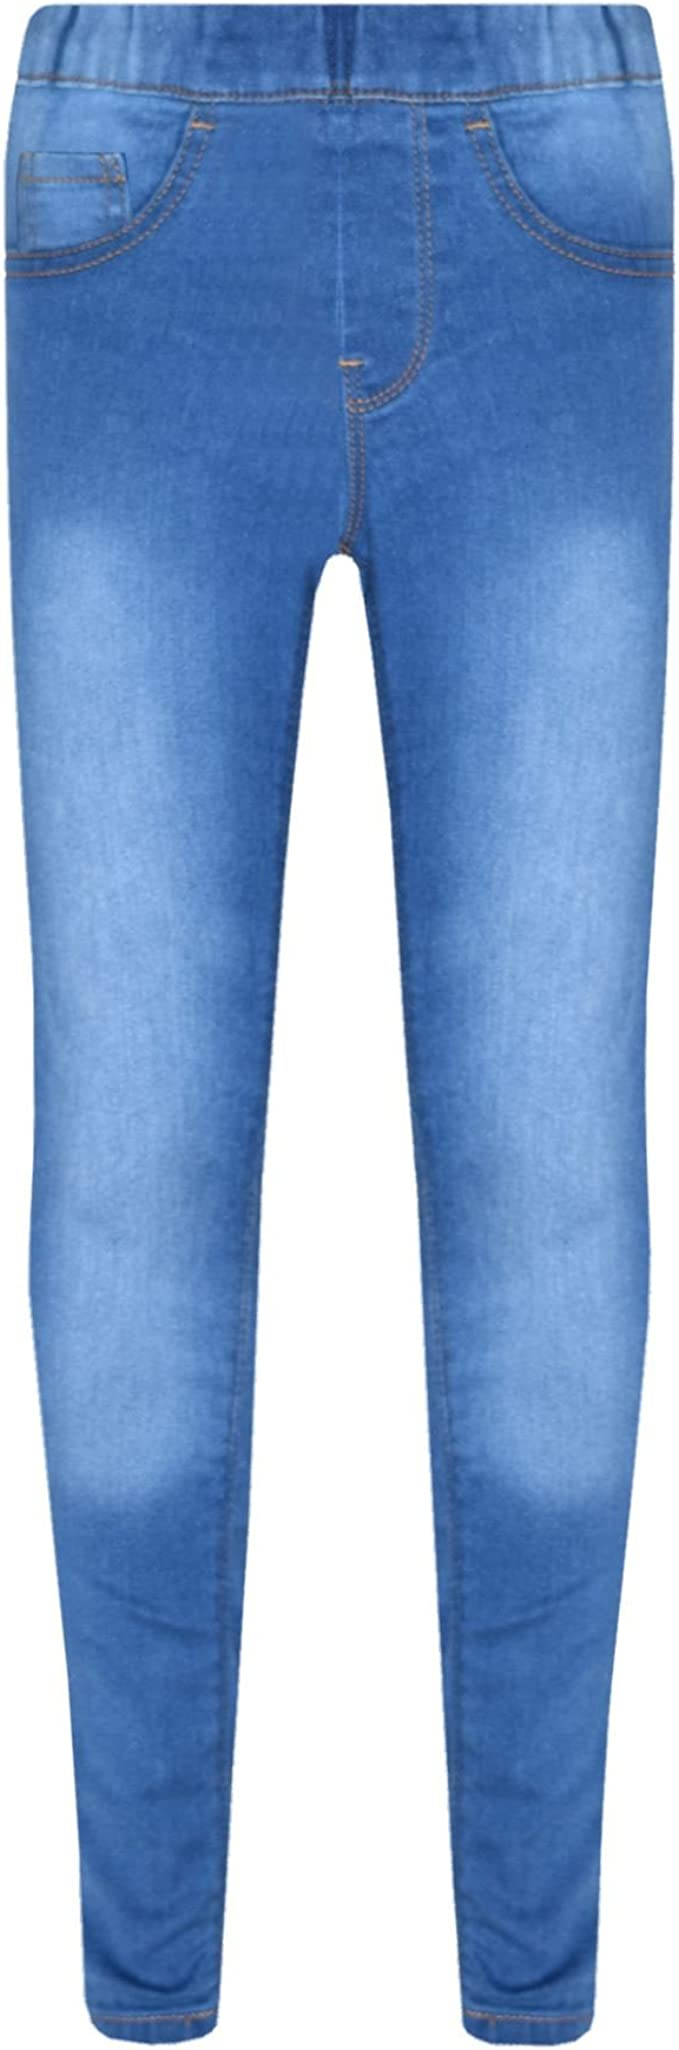 A2Z 4 Kids/® Girls Stretchy Jeans Kids White Denim Ripped Pants Fashion Frayed Trousers Jeggings Age 5 6 7 8 9 10 11 12 13 Years